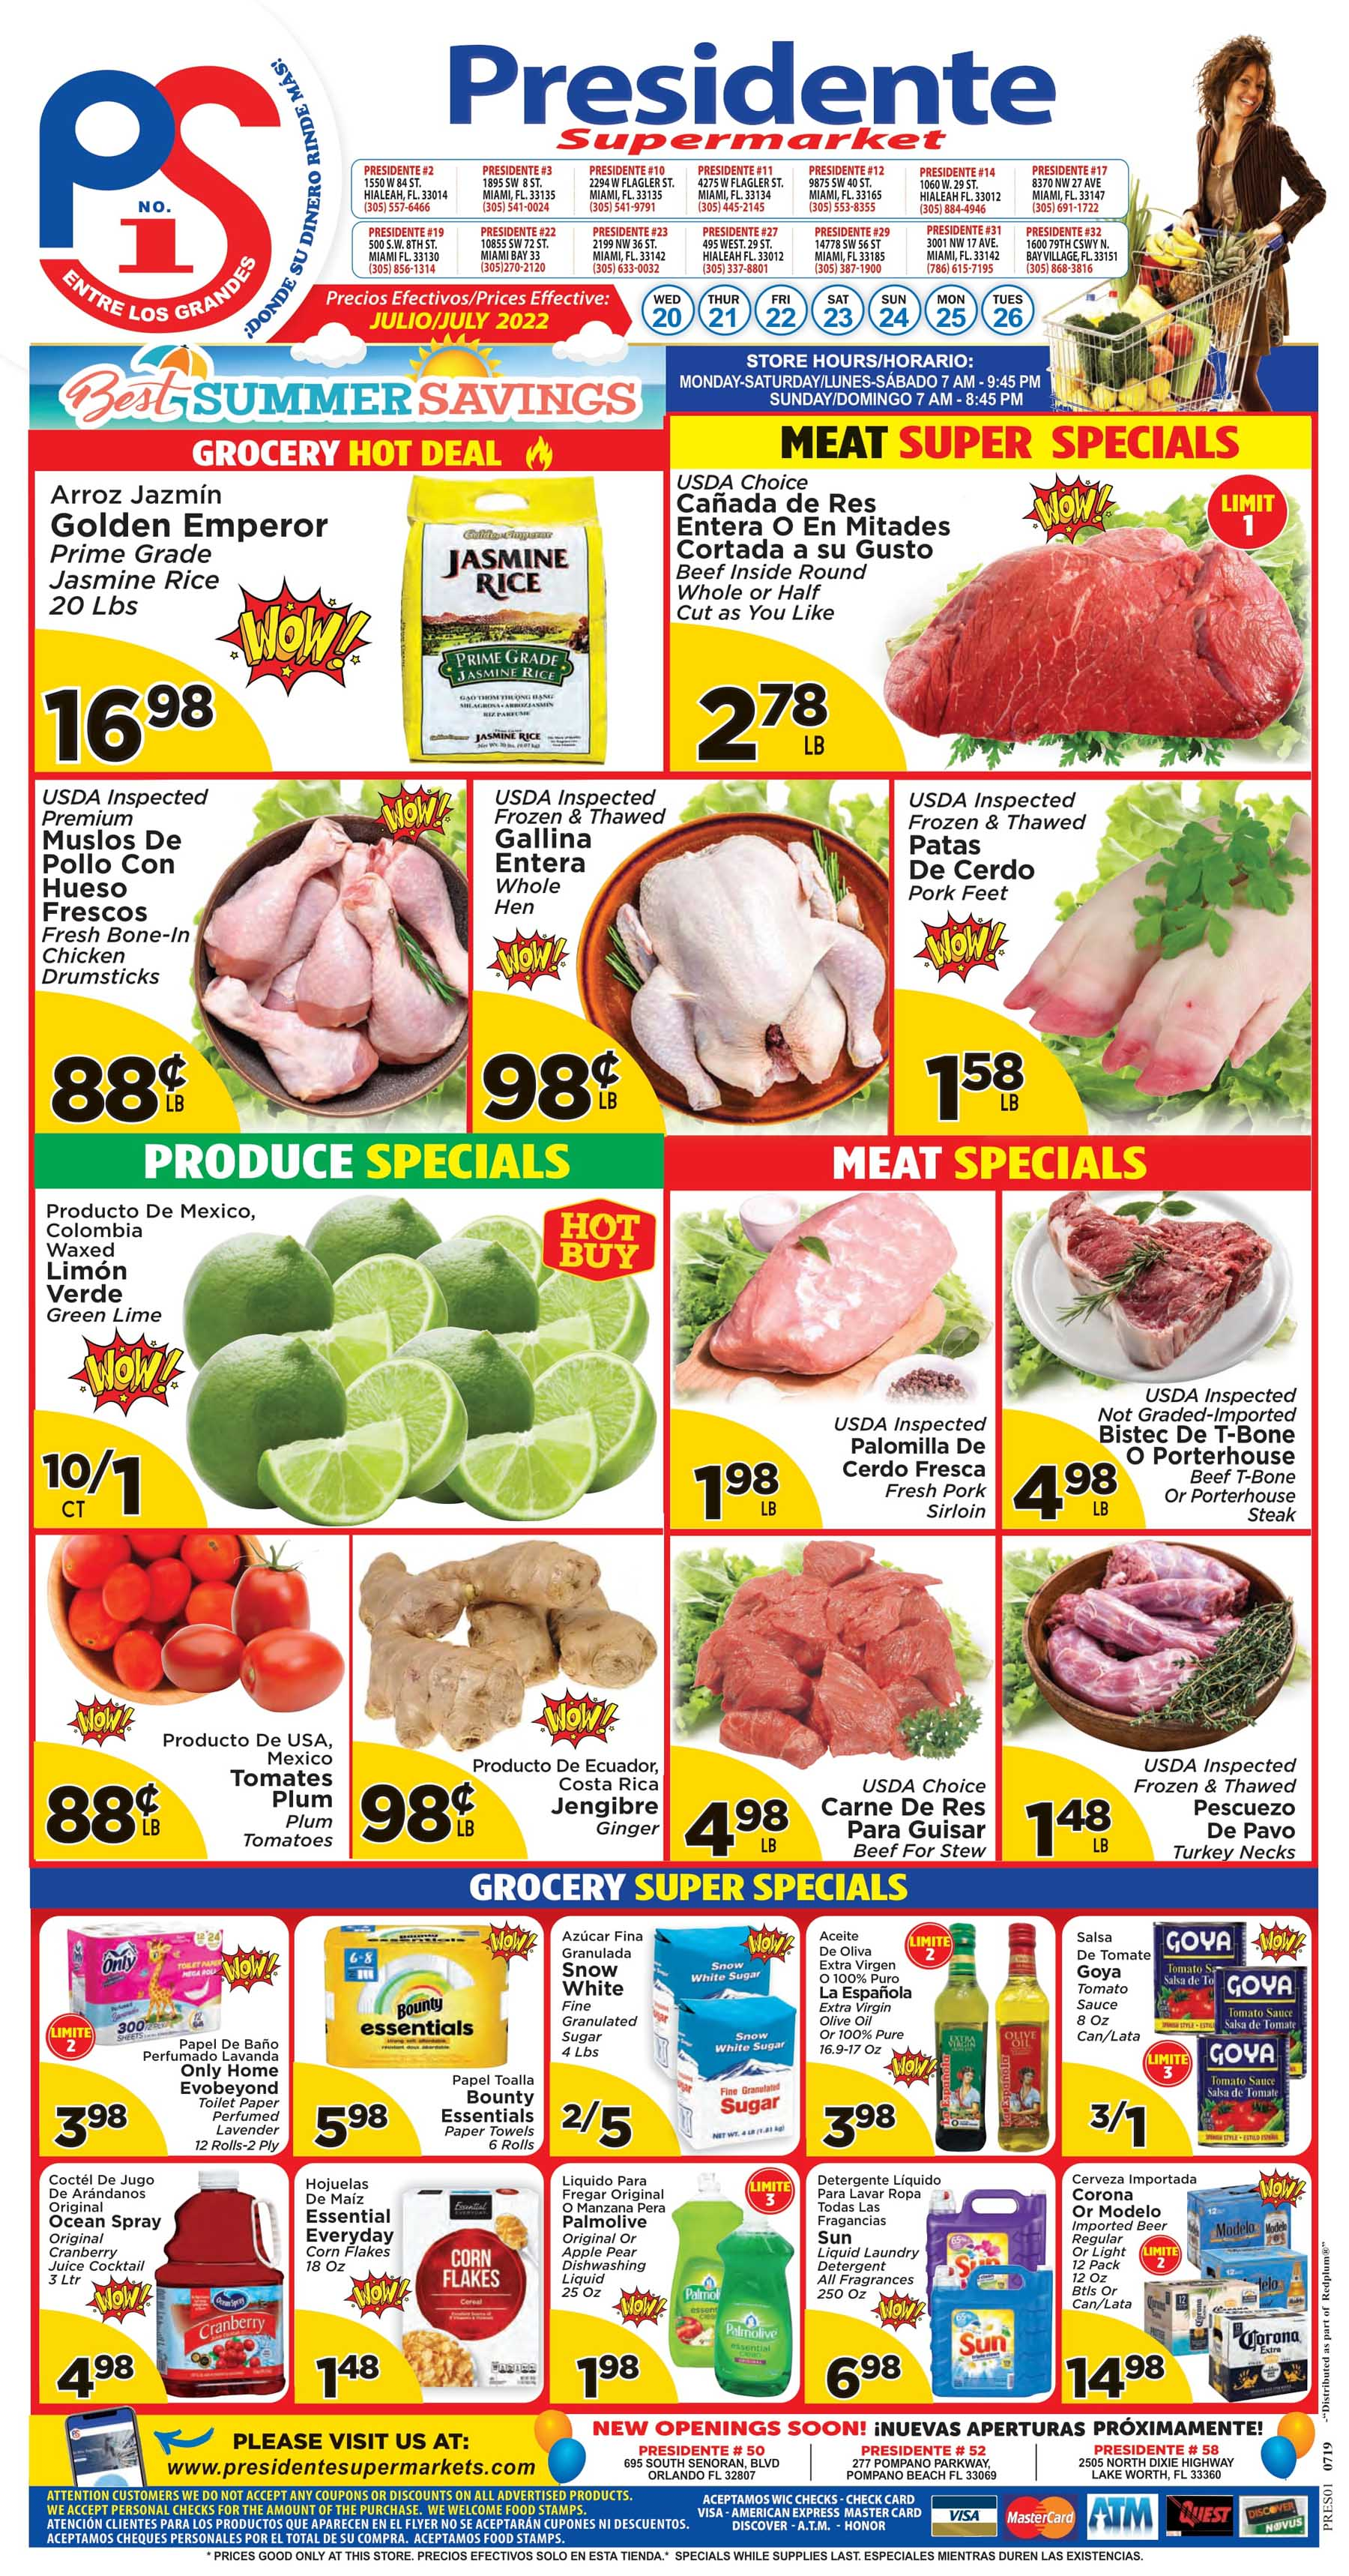 73890191335ae5 Weekly Promotions - Presidente Supermarkets